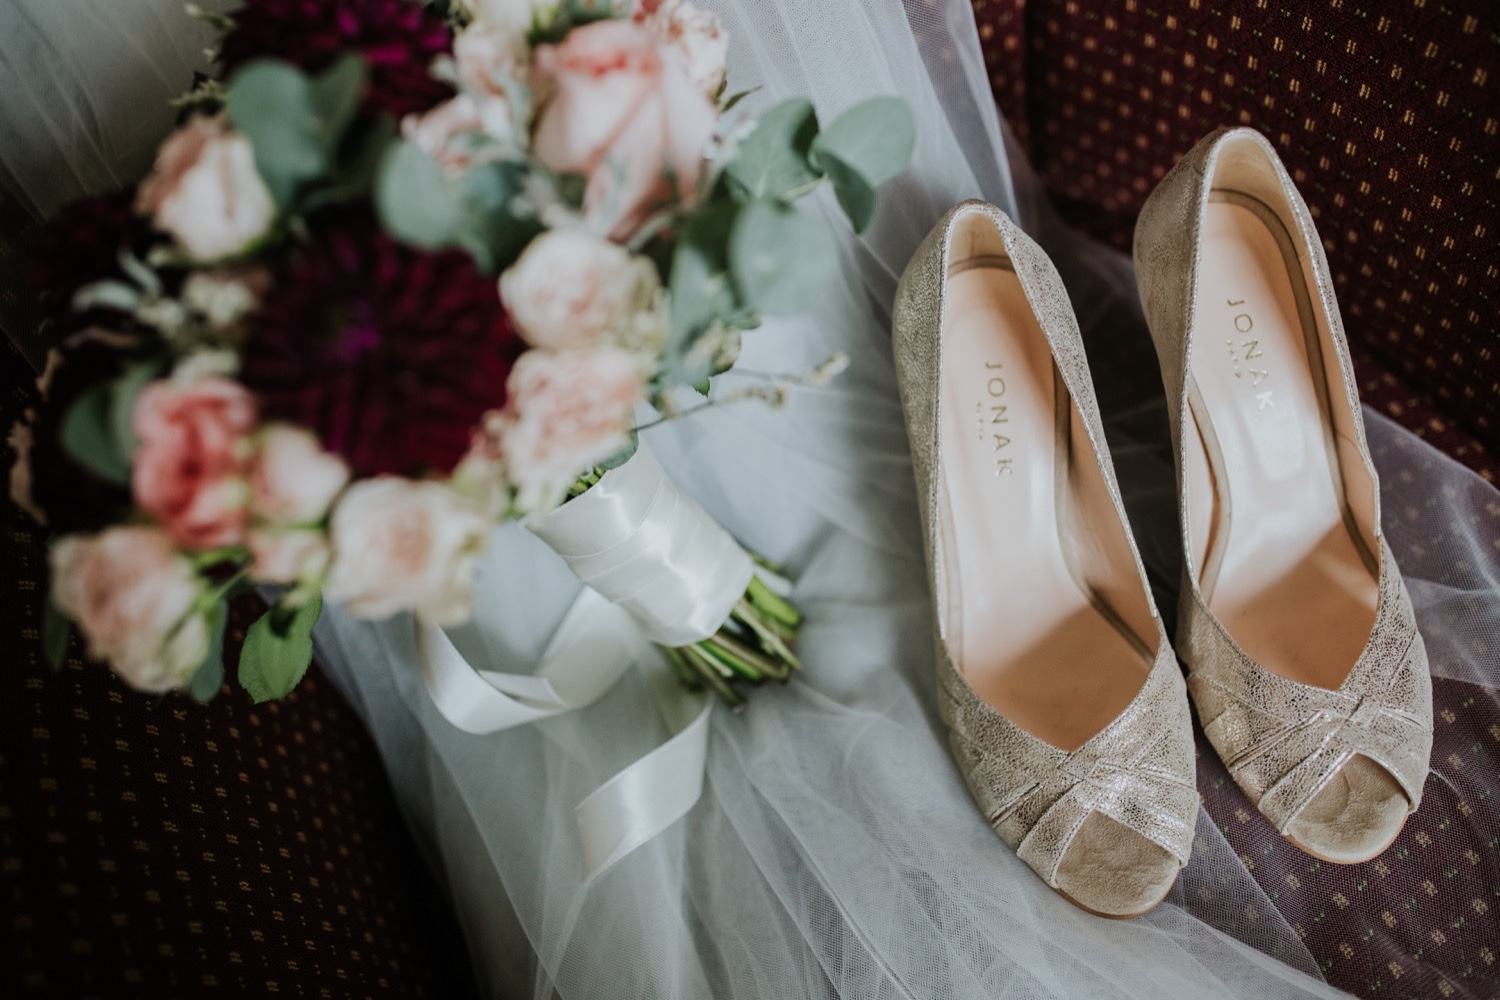 jonak paris wedding shoes paris roseparks flowers edinburgh